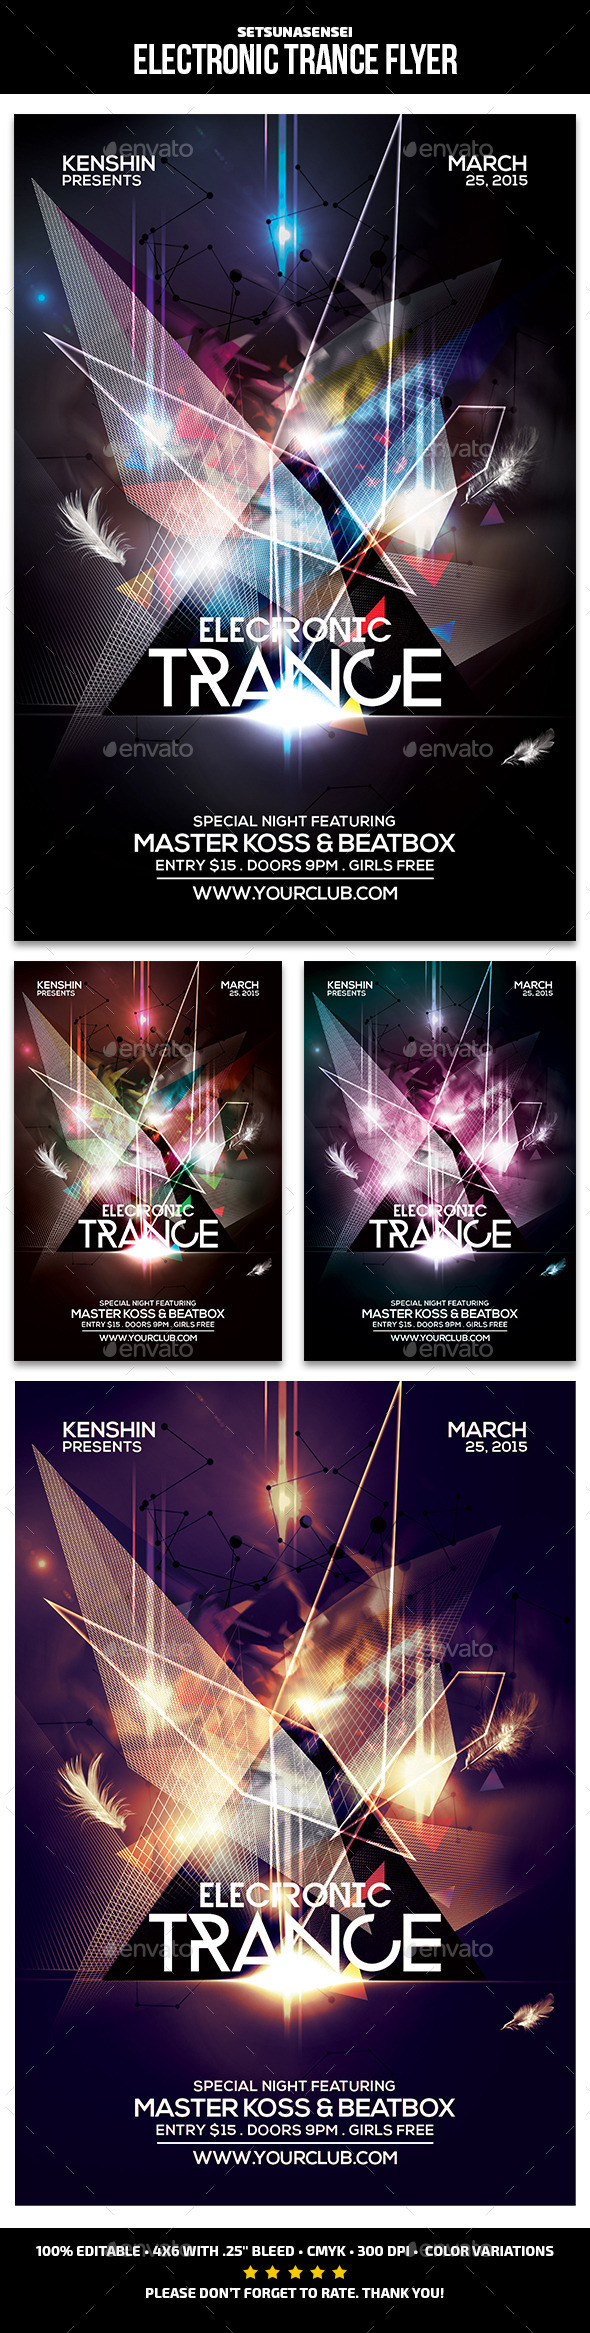 Electronic Trance Flyer - Clubs & Parties Events